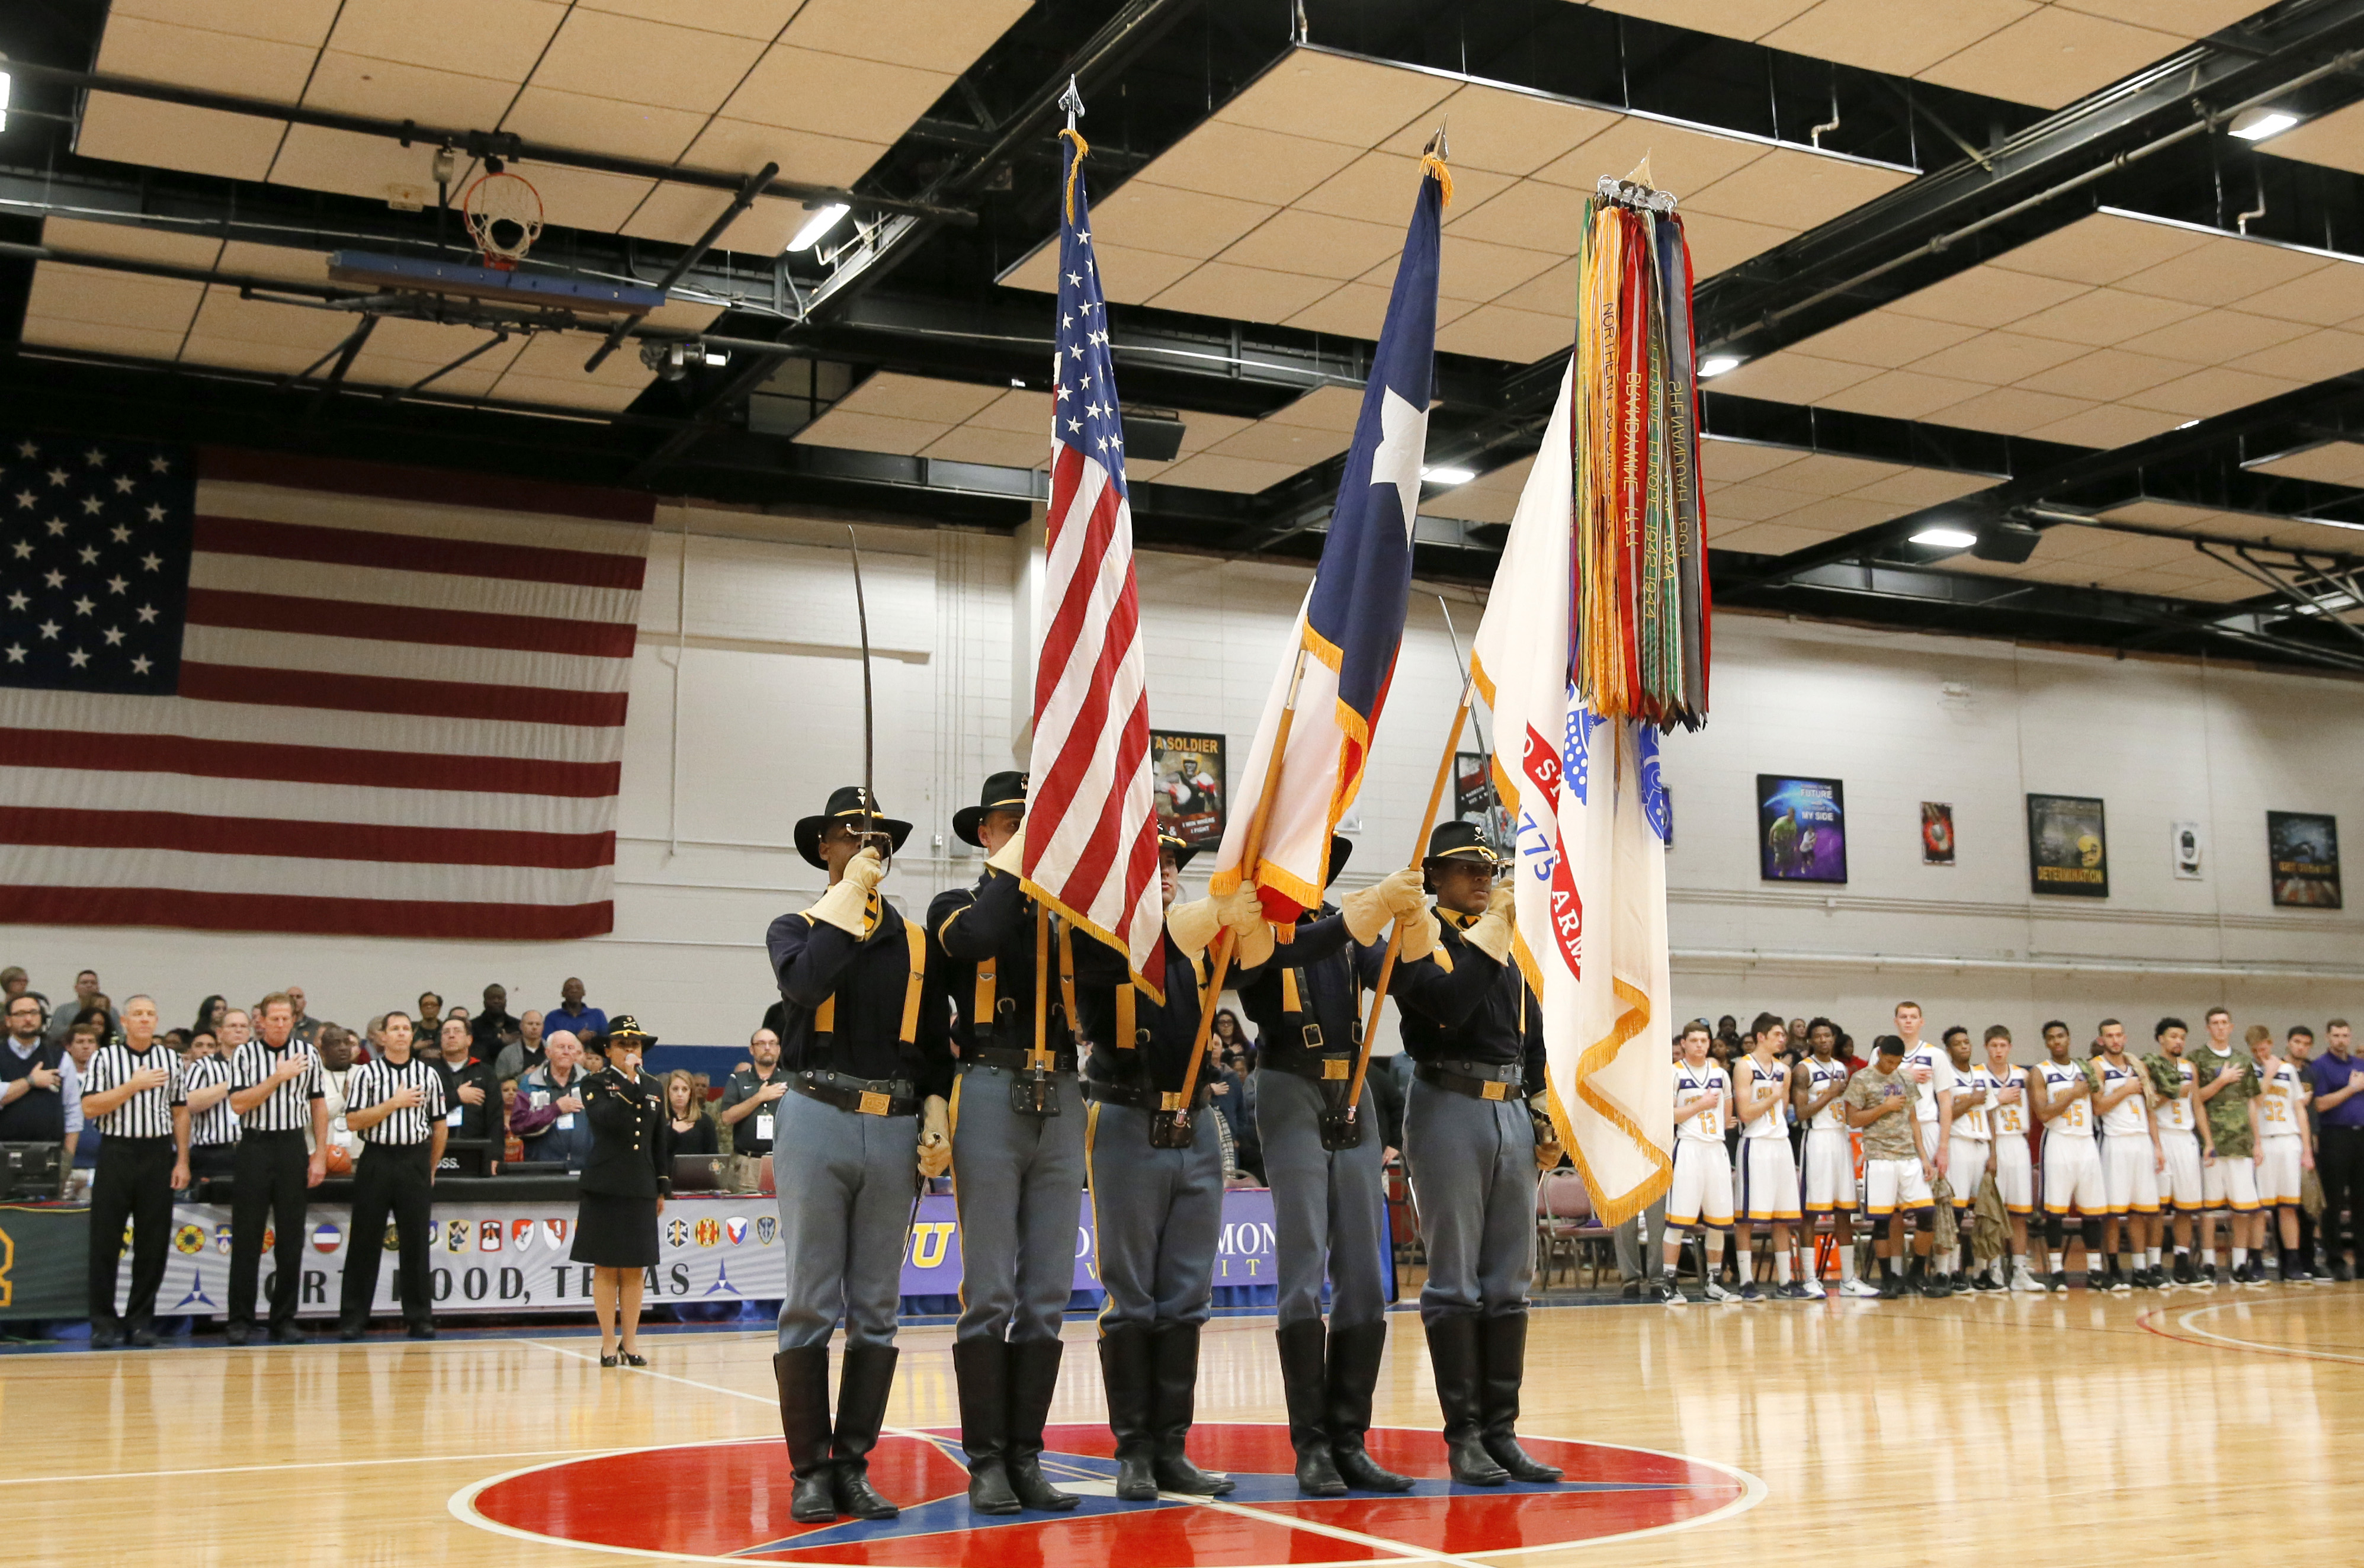 Members of the Army's 1st Calvary Division Honor Guard present the colors during the national anthem as members of the Hardin-Simmons basketball team, right rear, watch before an NCAA college basketball game against Baylor on Wednesday, Dec. 16, 2015, at